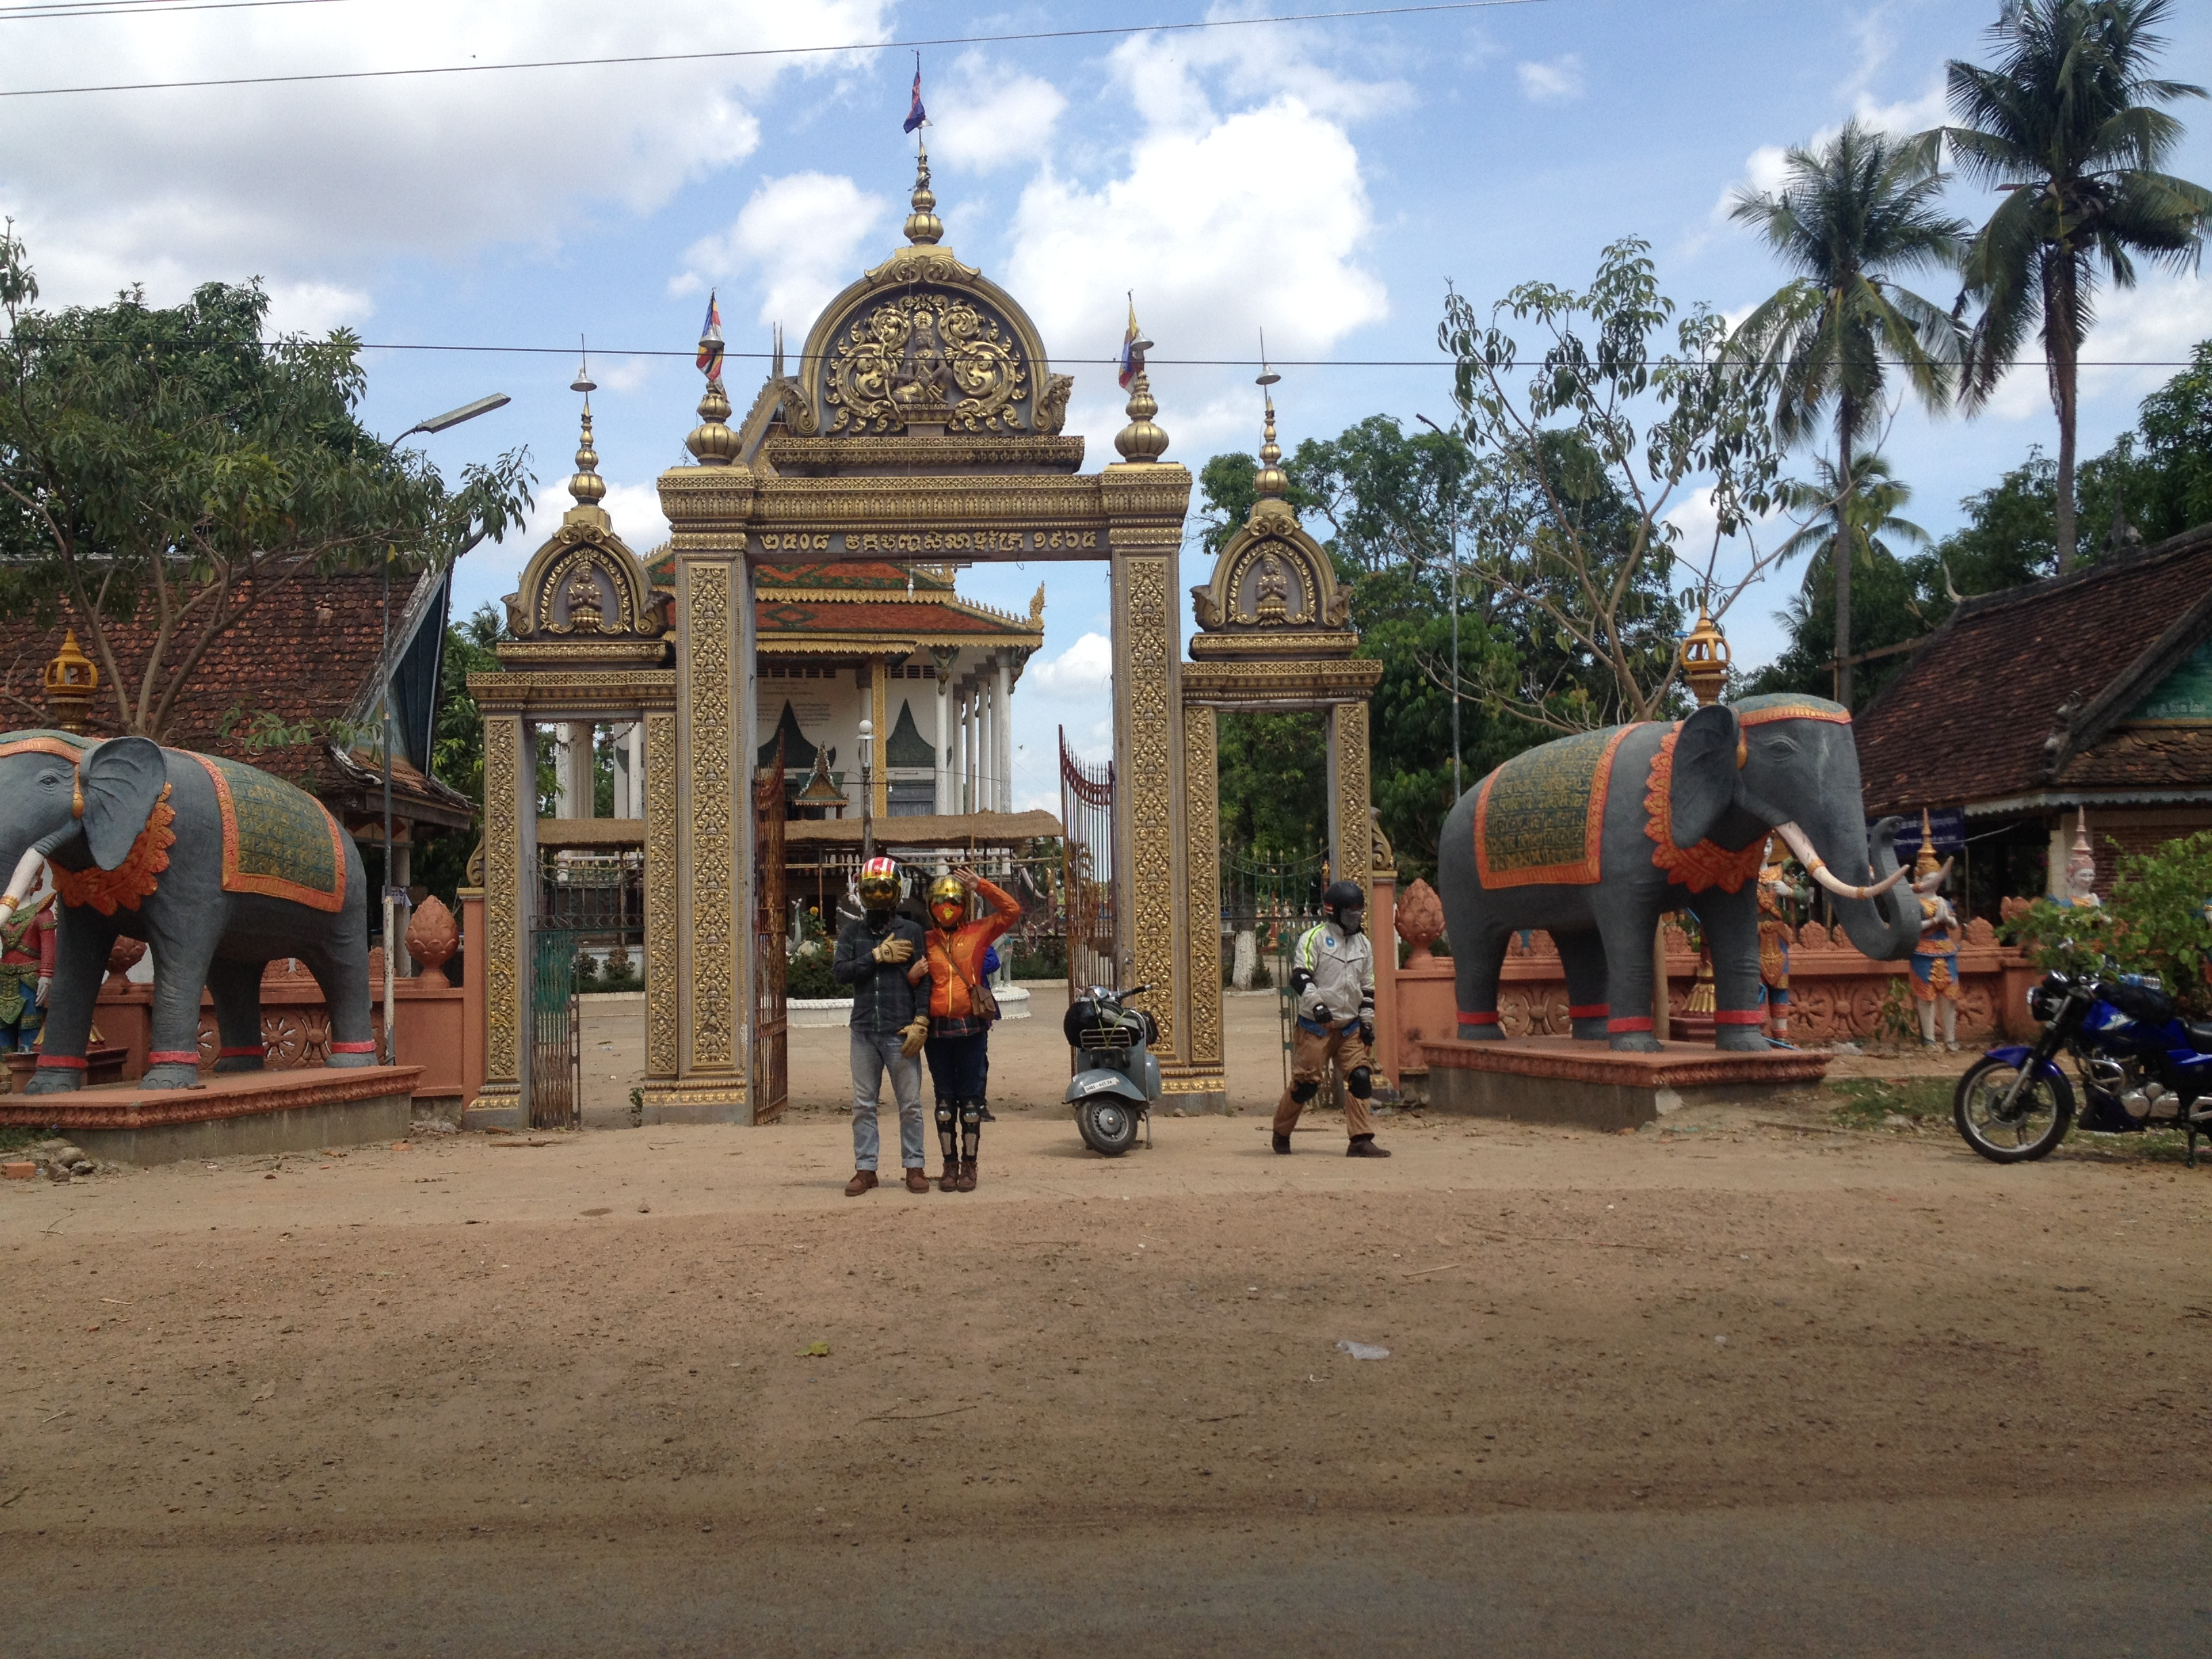 Driving bike to Cambodia, backpackers will be excited with peaceful atmosphere there